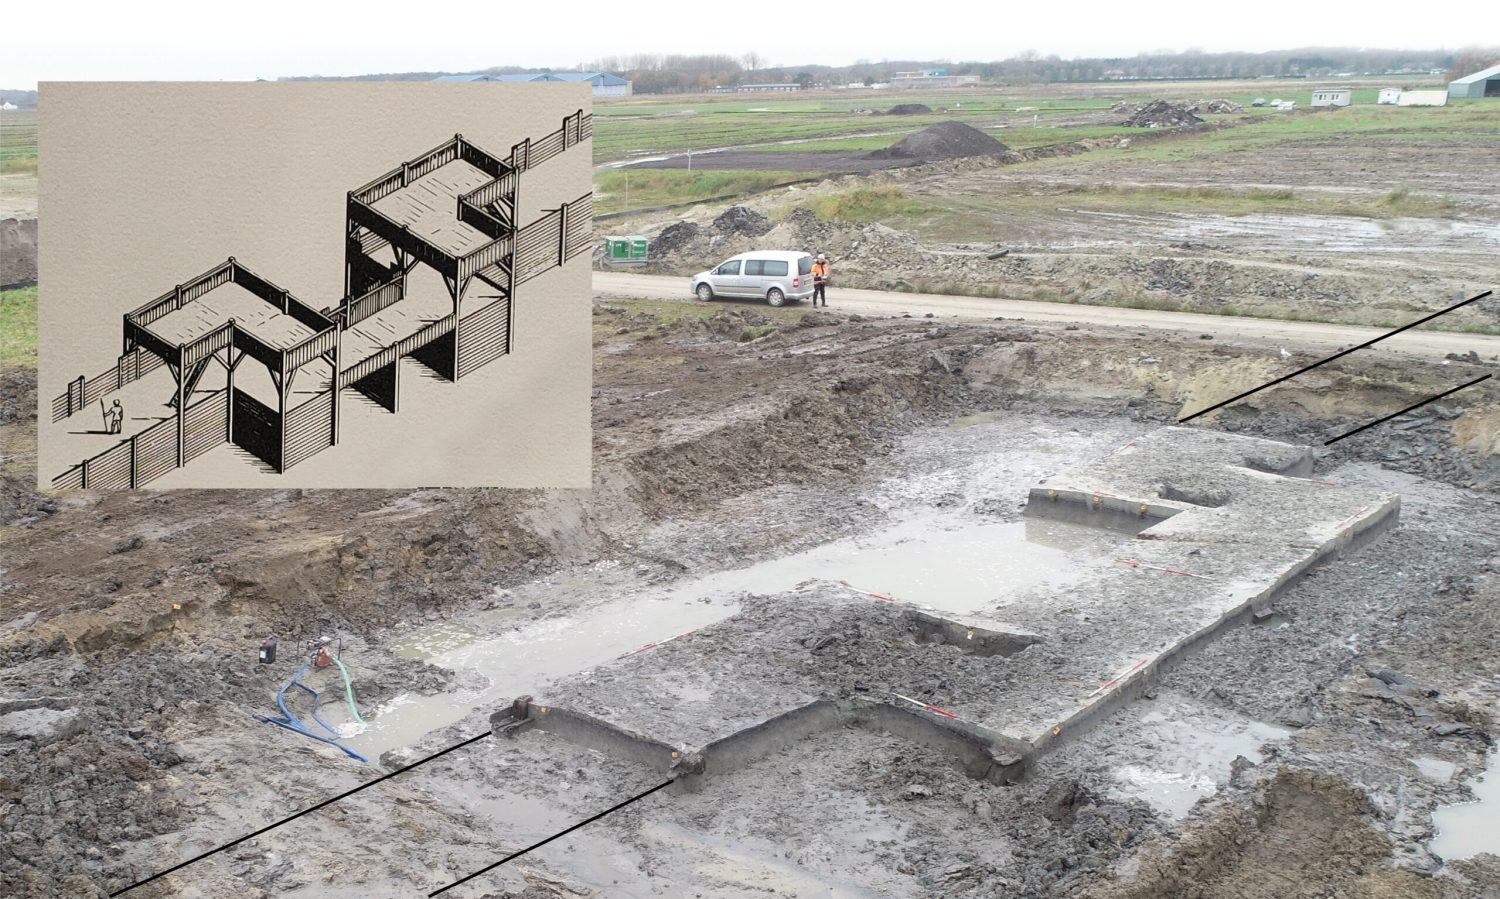 left A Roman legionary fortress has been detected near the renowned auxiliary fort at Valkenburg. Uncovering the remains of the fortress gateway was a key factor in proving the existence of a previously unsuspected military site. The inset reconstruction drawing provides a sense of how this timber gateway would once have looked.